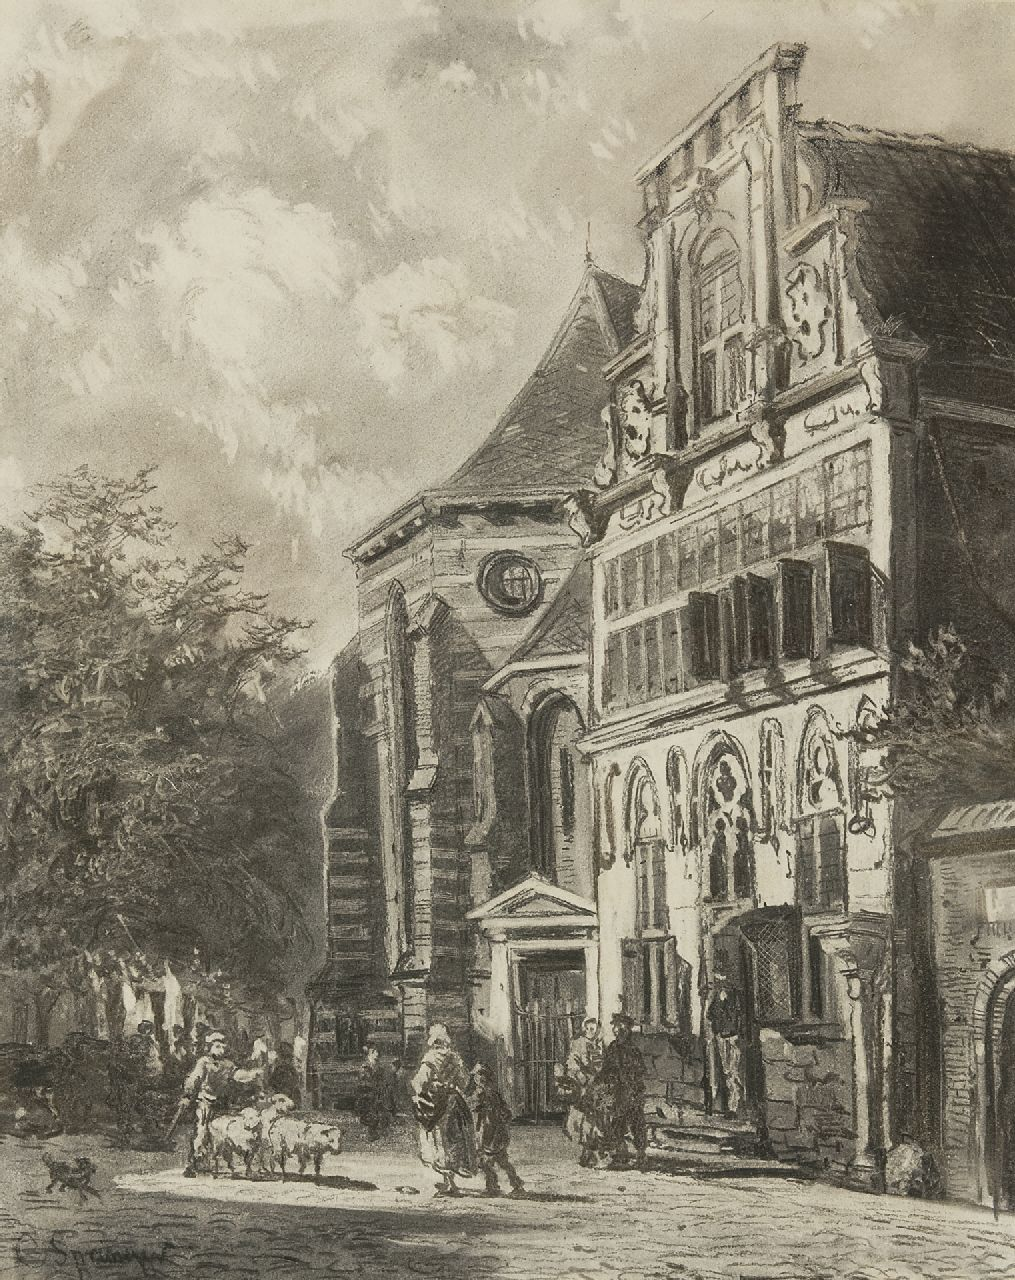 Springer C.  | Cornelis Springer, Stedehuys Woerden (museum now), charcoal on paper 48.5 x 39.5 cm, signed l.l. and painted ca. 1858